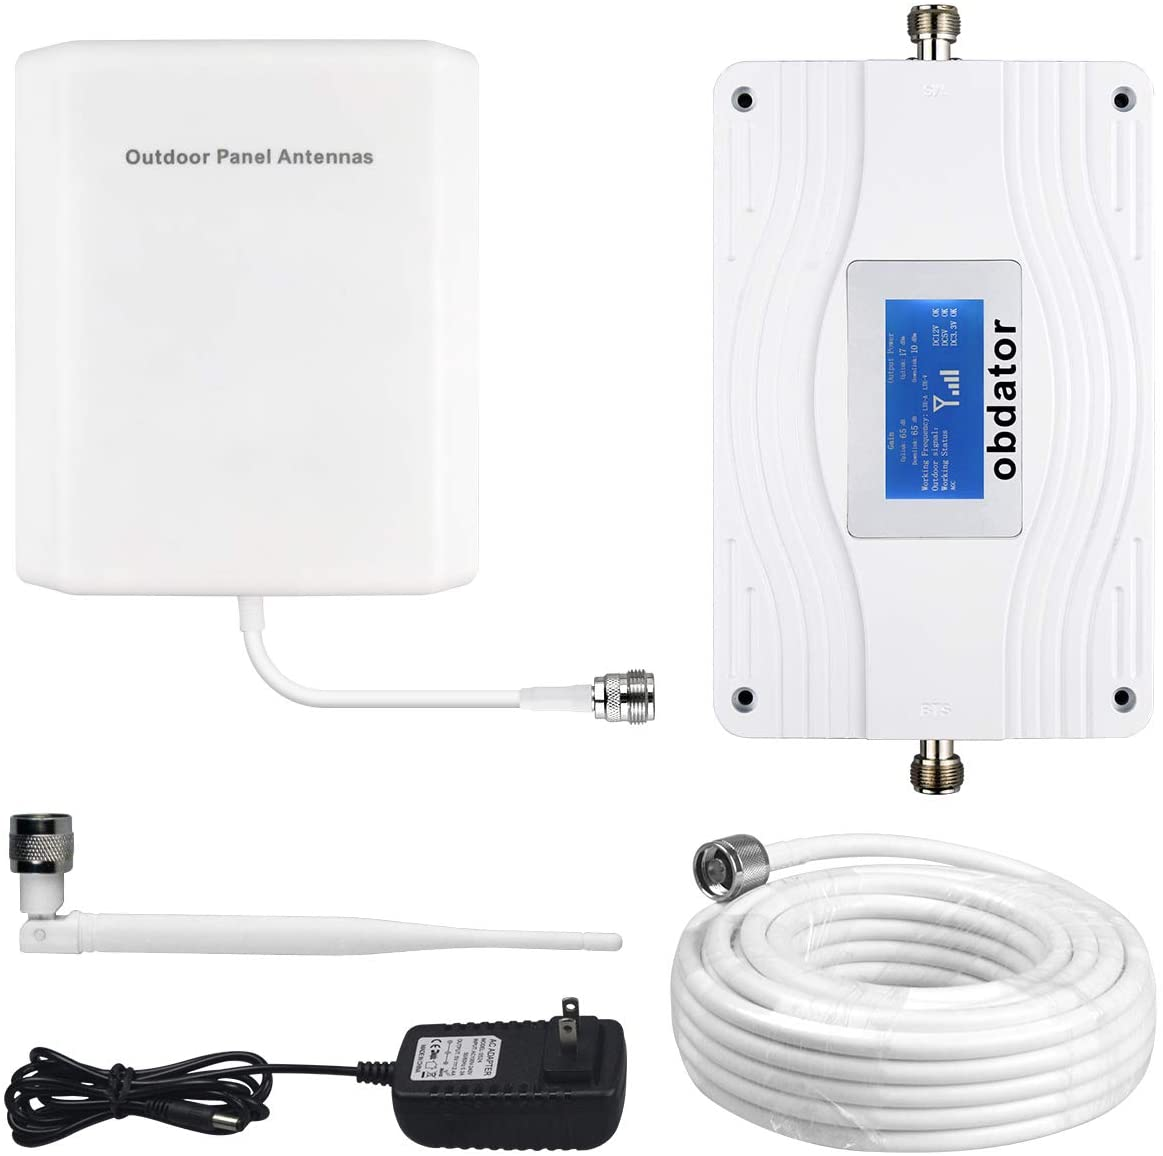 Cell Phone Signal Booster for Home and Office - Boost 4G LTE Data for Verizon AT&T and T-Mobile - obdator High Gain 65dB Dual Band 700MHz Band 12/17/13 Cellular Repeater kit